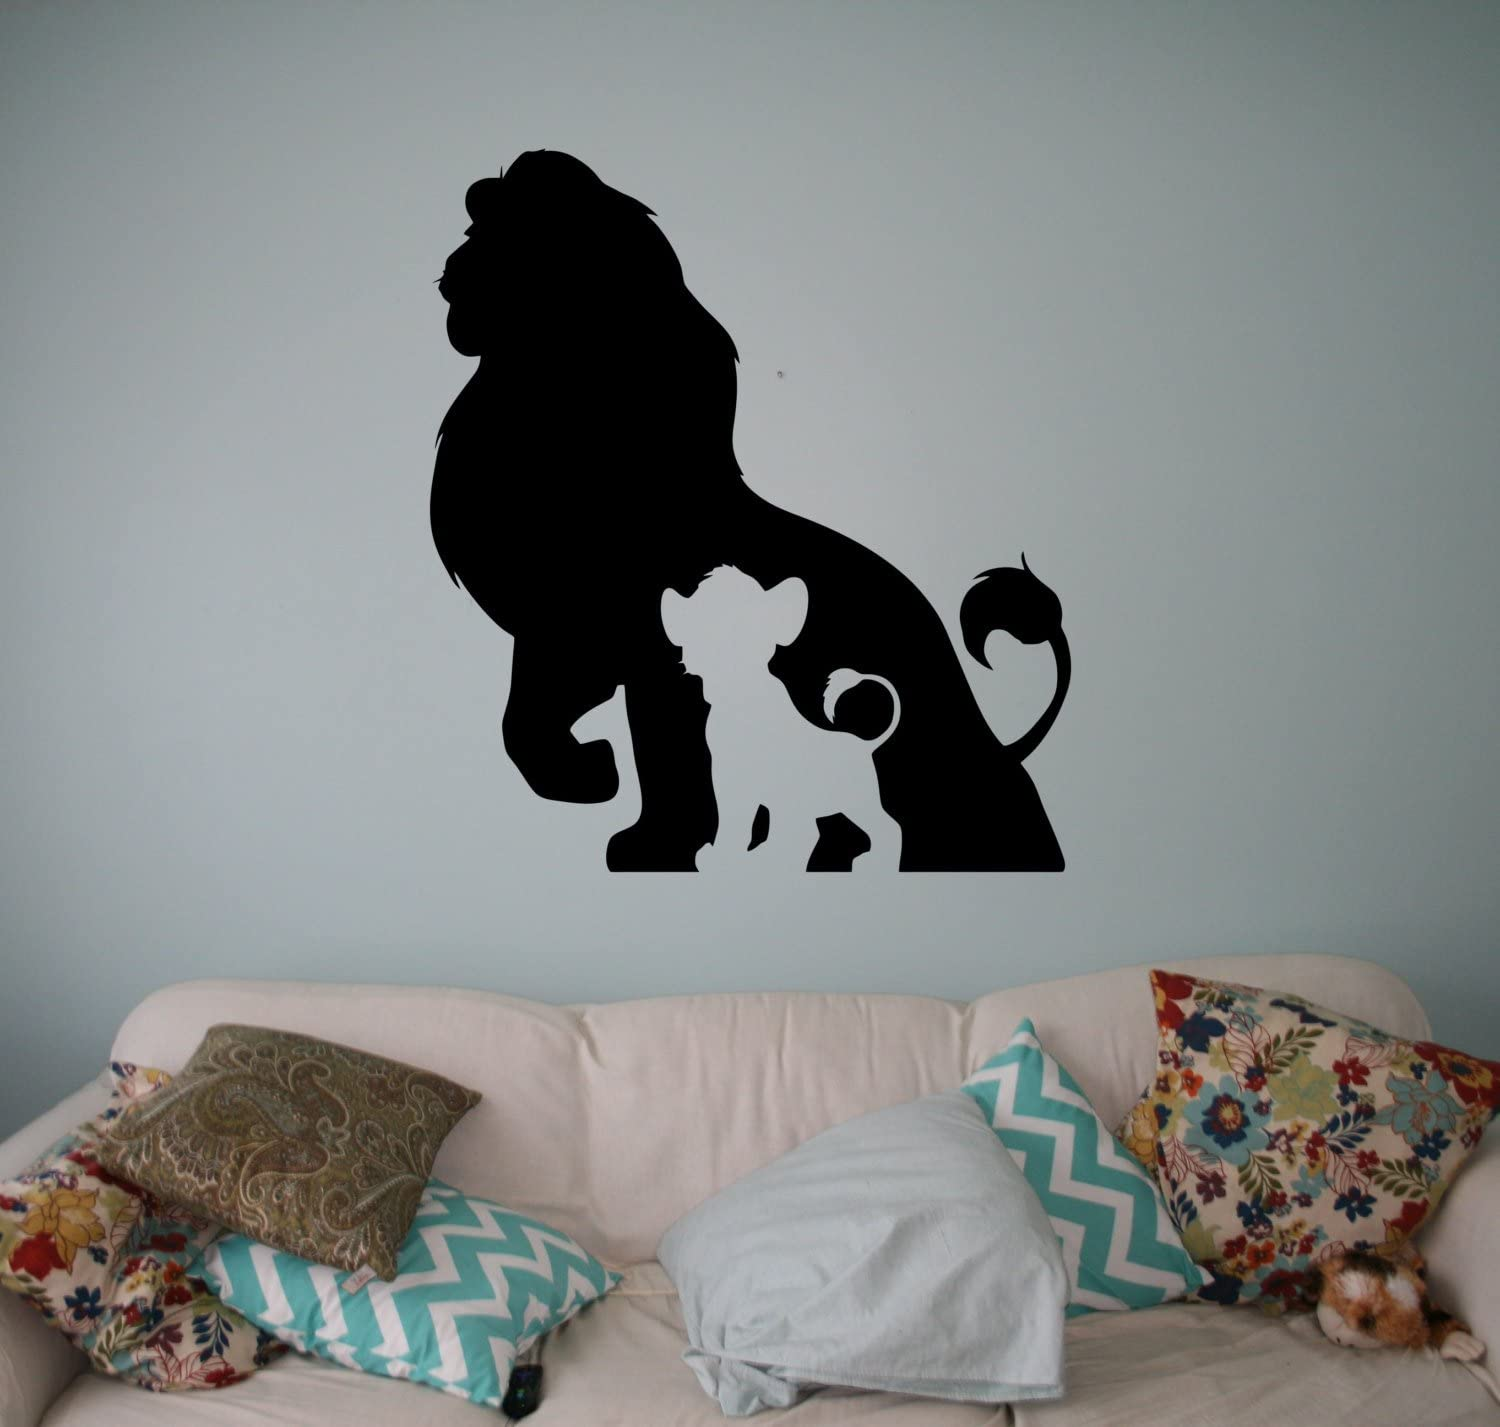 Place The Lion King Wall Vinyl Decal Disney Cartoons Wall Sticker Wall Home Interior - Kids Children Room Decor - Removable Sticker Made in USA - 38x70 Inch